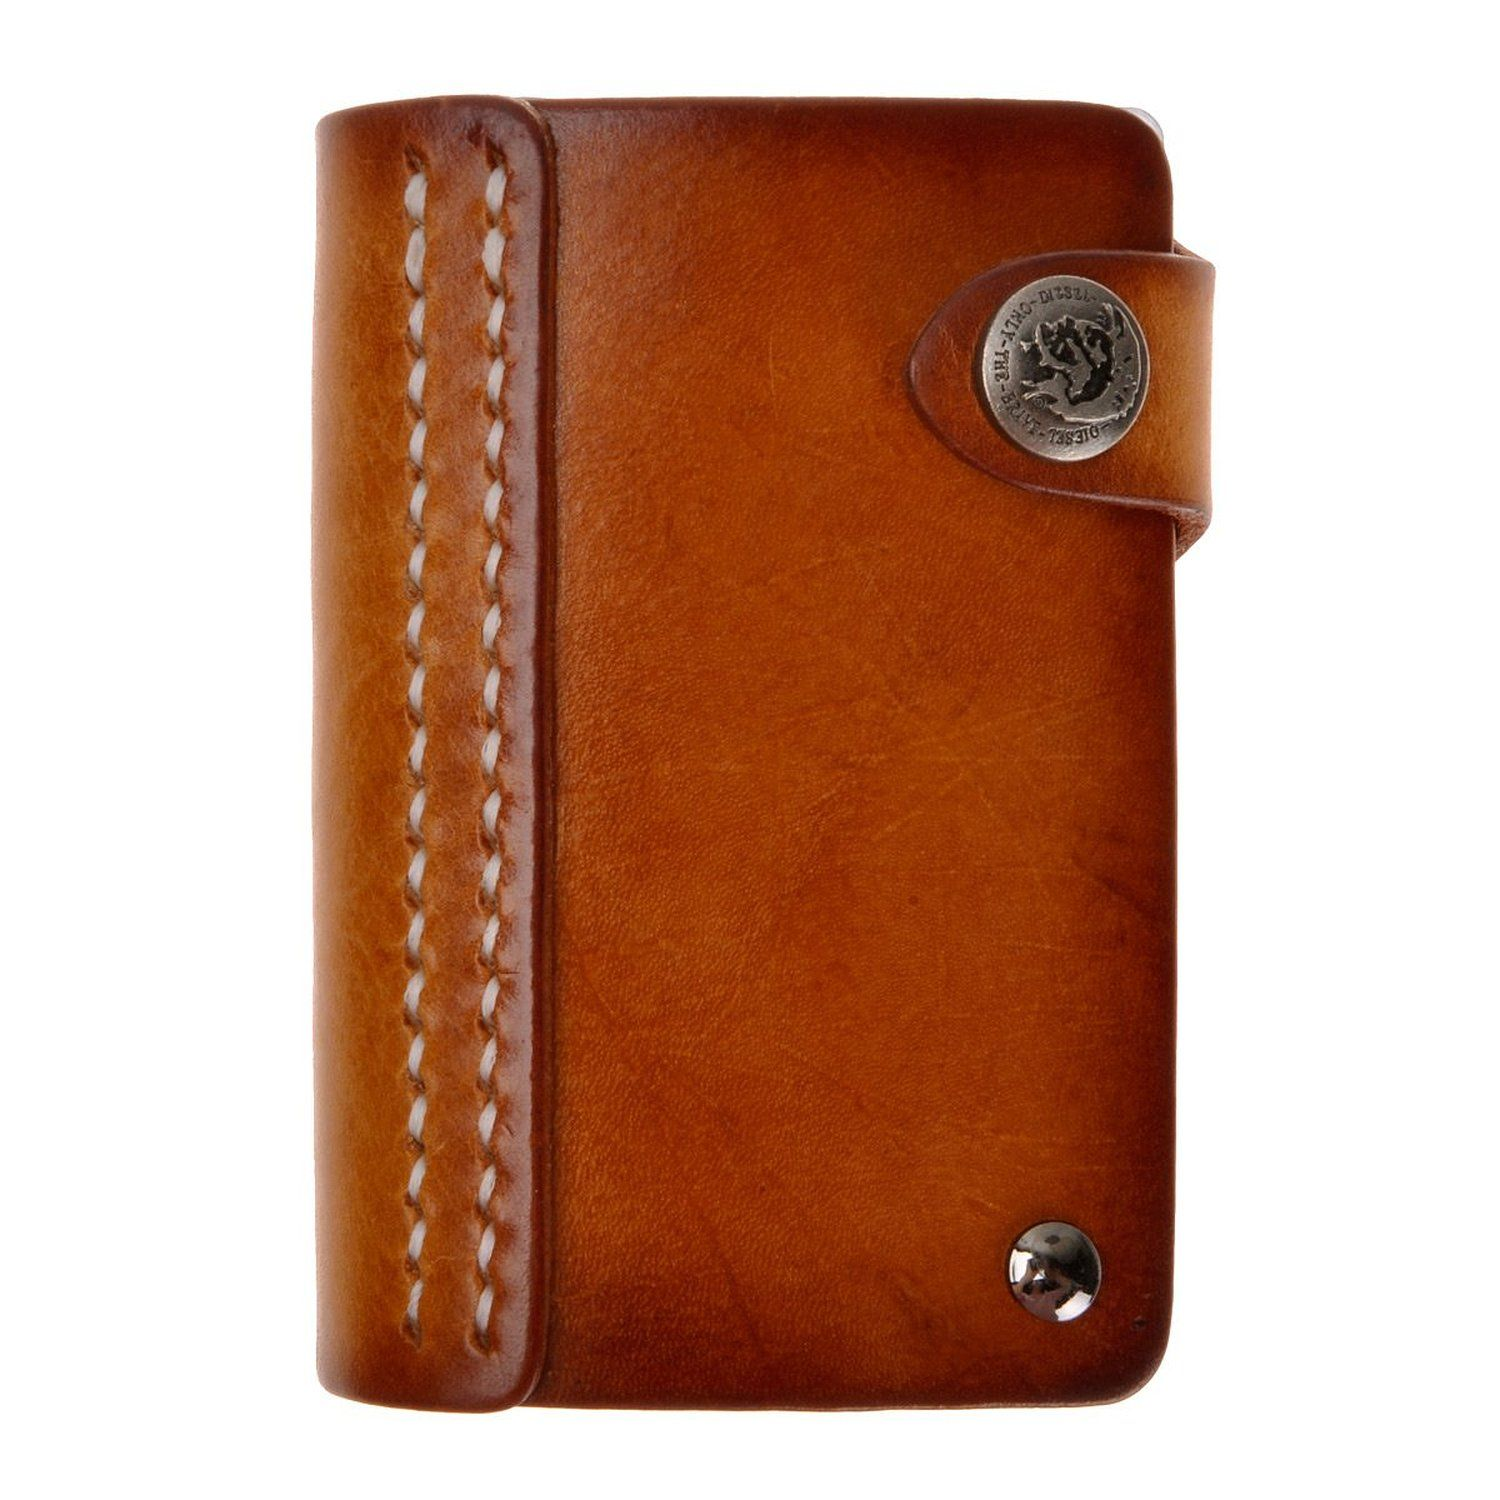 Amazon.com: ZLYC Handmade Vegetable Tanned Leather Button Credit ...